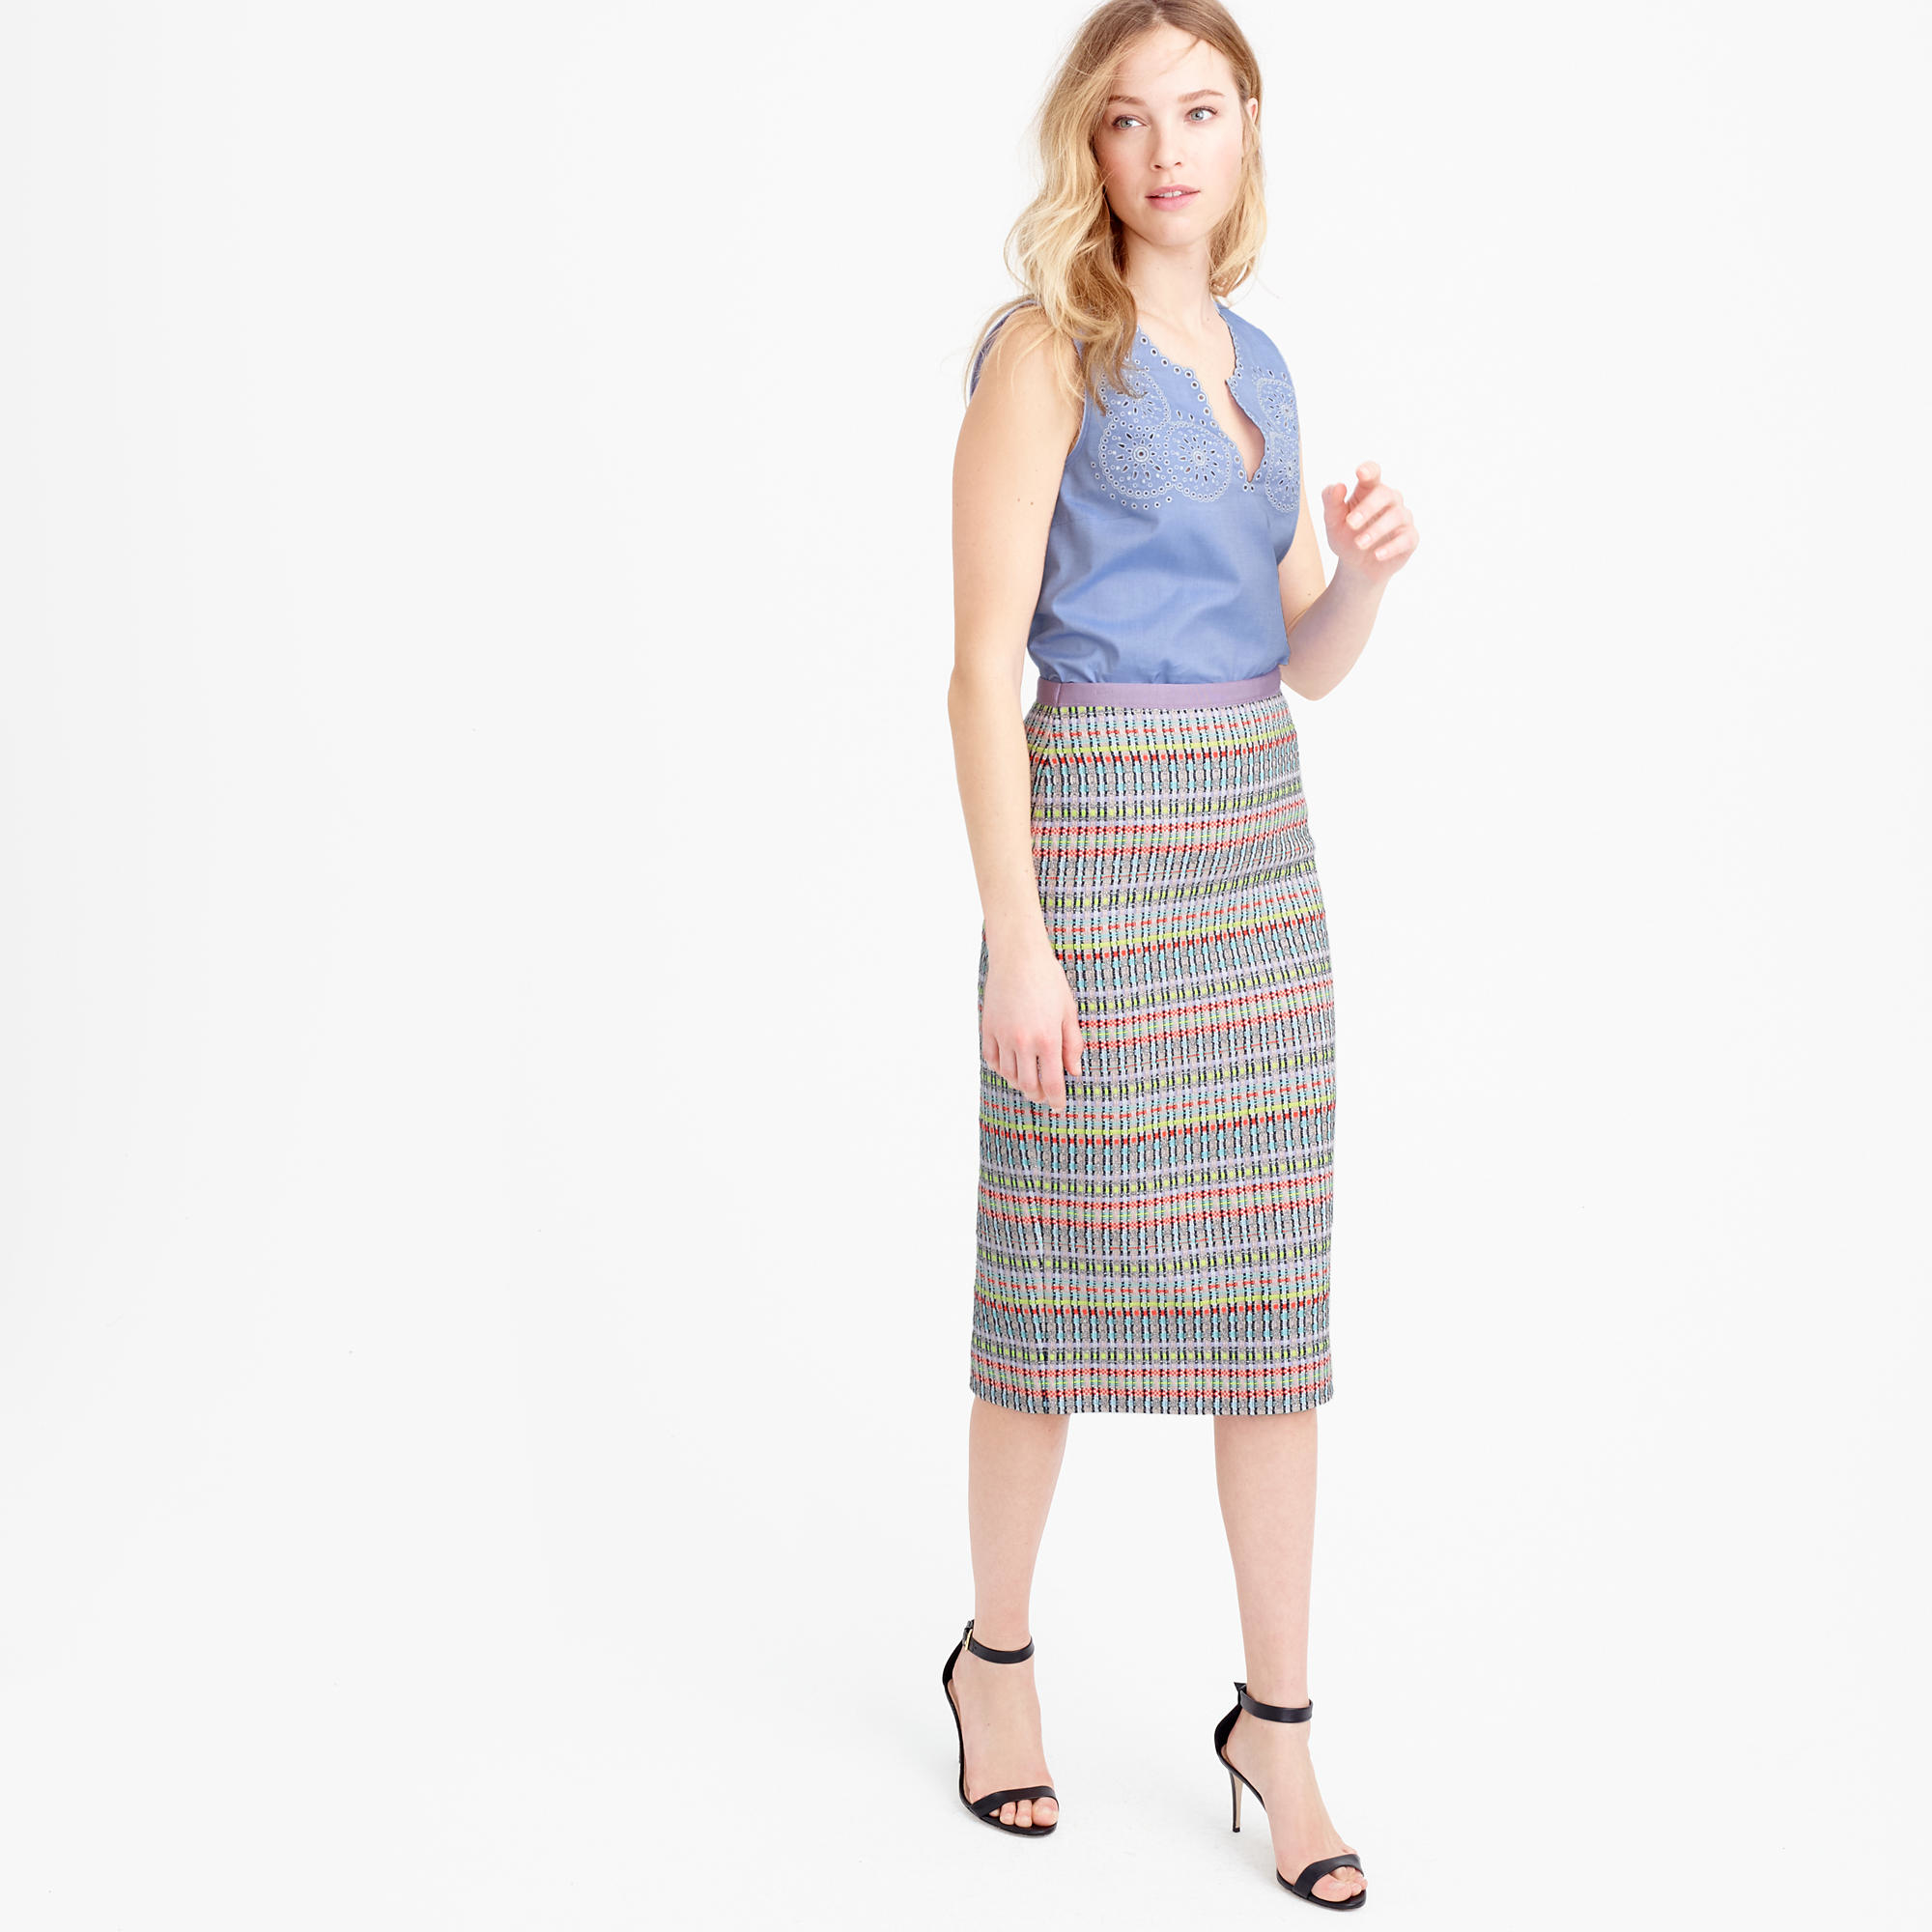 abc9b976a6 J.Crew Collection Neon And Metallic Tweed Pencil Skirt in Gray - Lyst